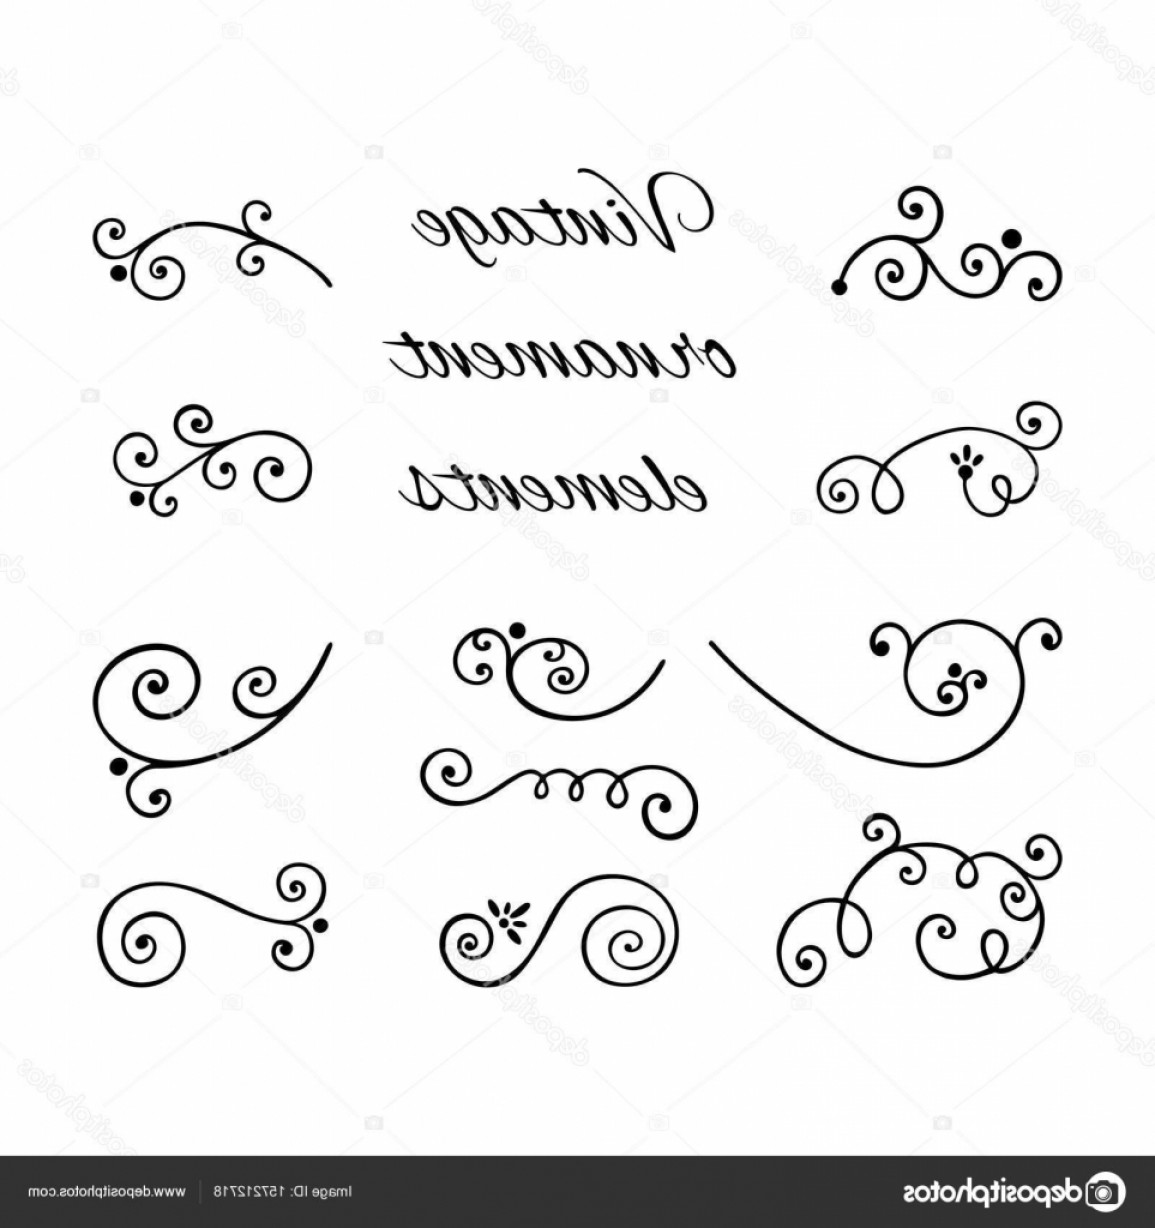 1155x1228 Stock Illustration Victorian Swirly Ornaments Vector Arenawp